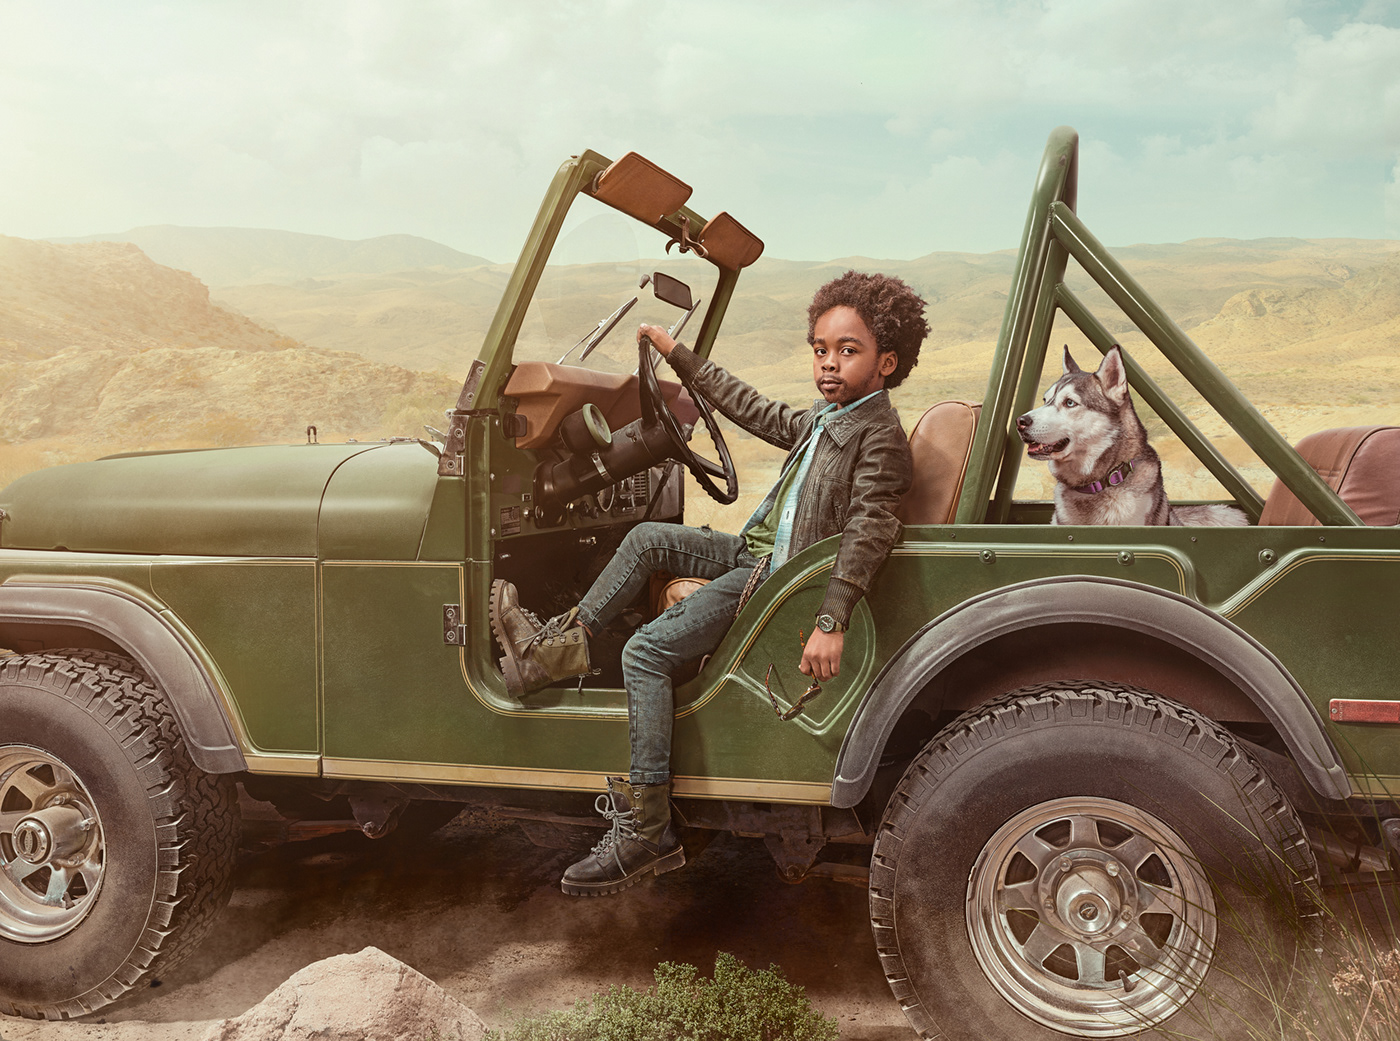 color grading compositing ad campaign cinematic Creative Retouching environmental portraits